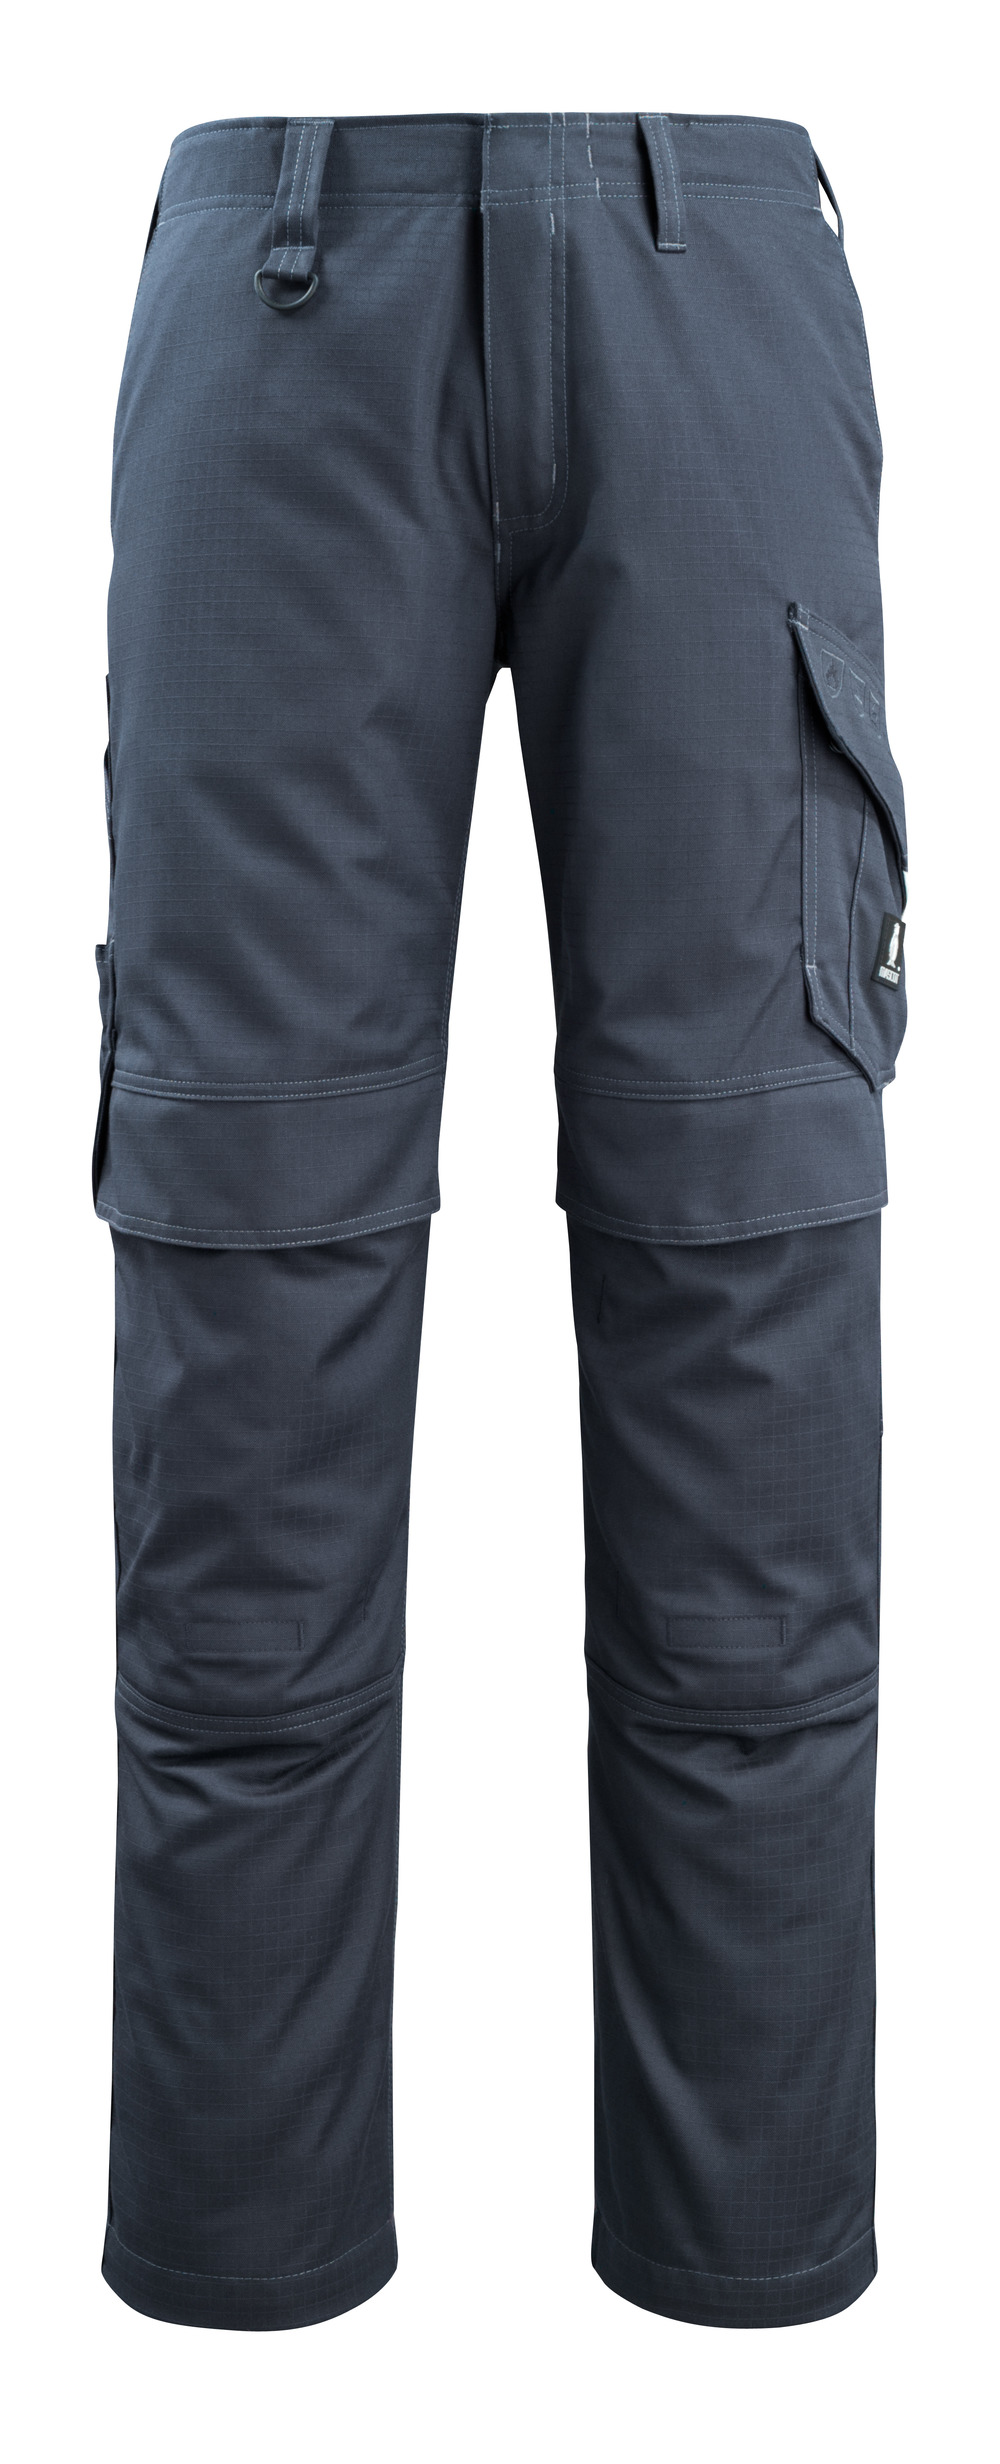 13679-216-010 Trousers with kneepad pockets - dark navy